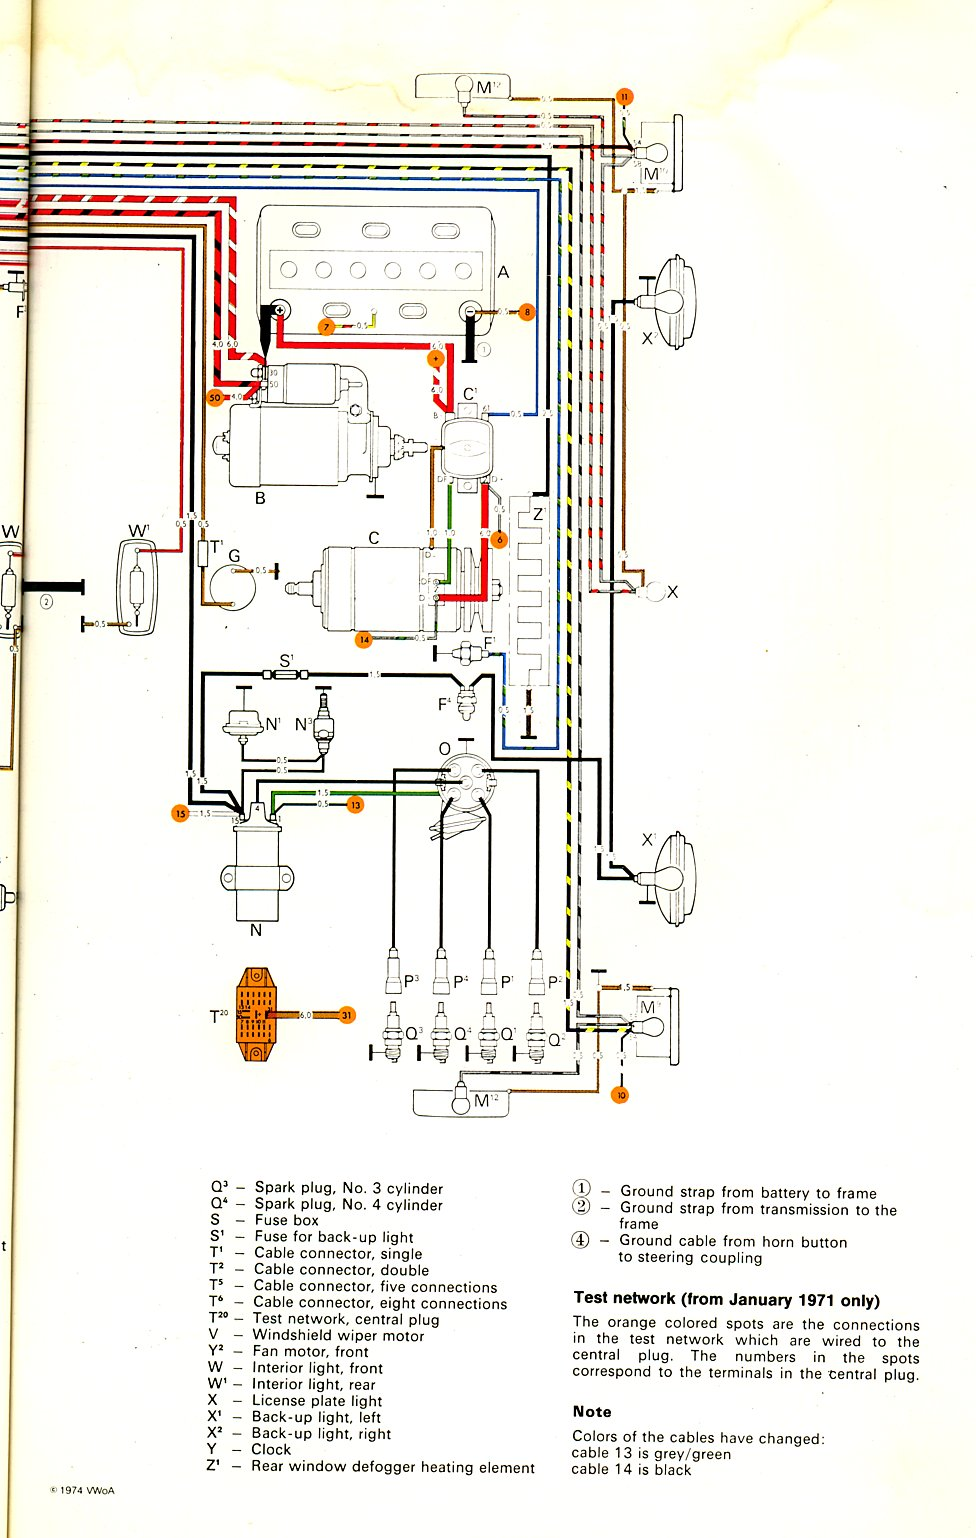 medium resolution of 1972 firebird wiper motor wiring diagram wiring diagram 67 camaro wiper wiring diagram 1972 firebird wiper